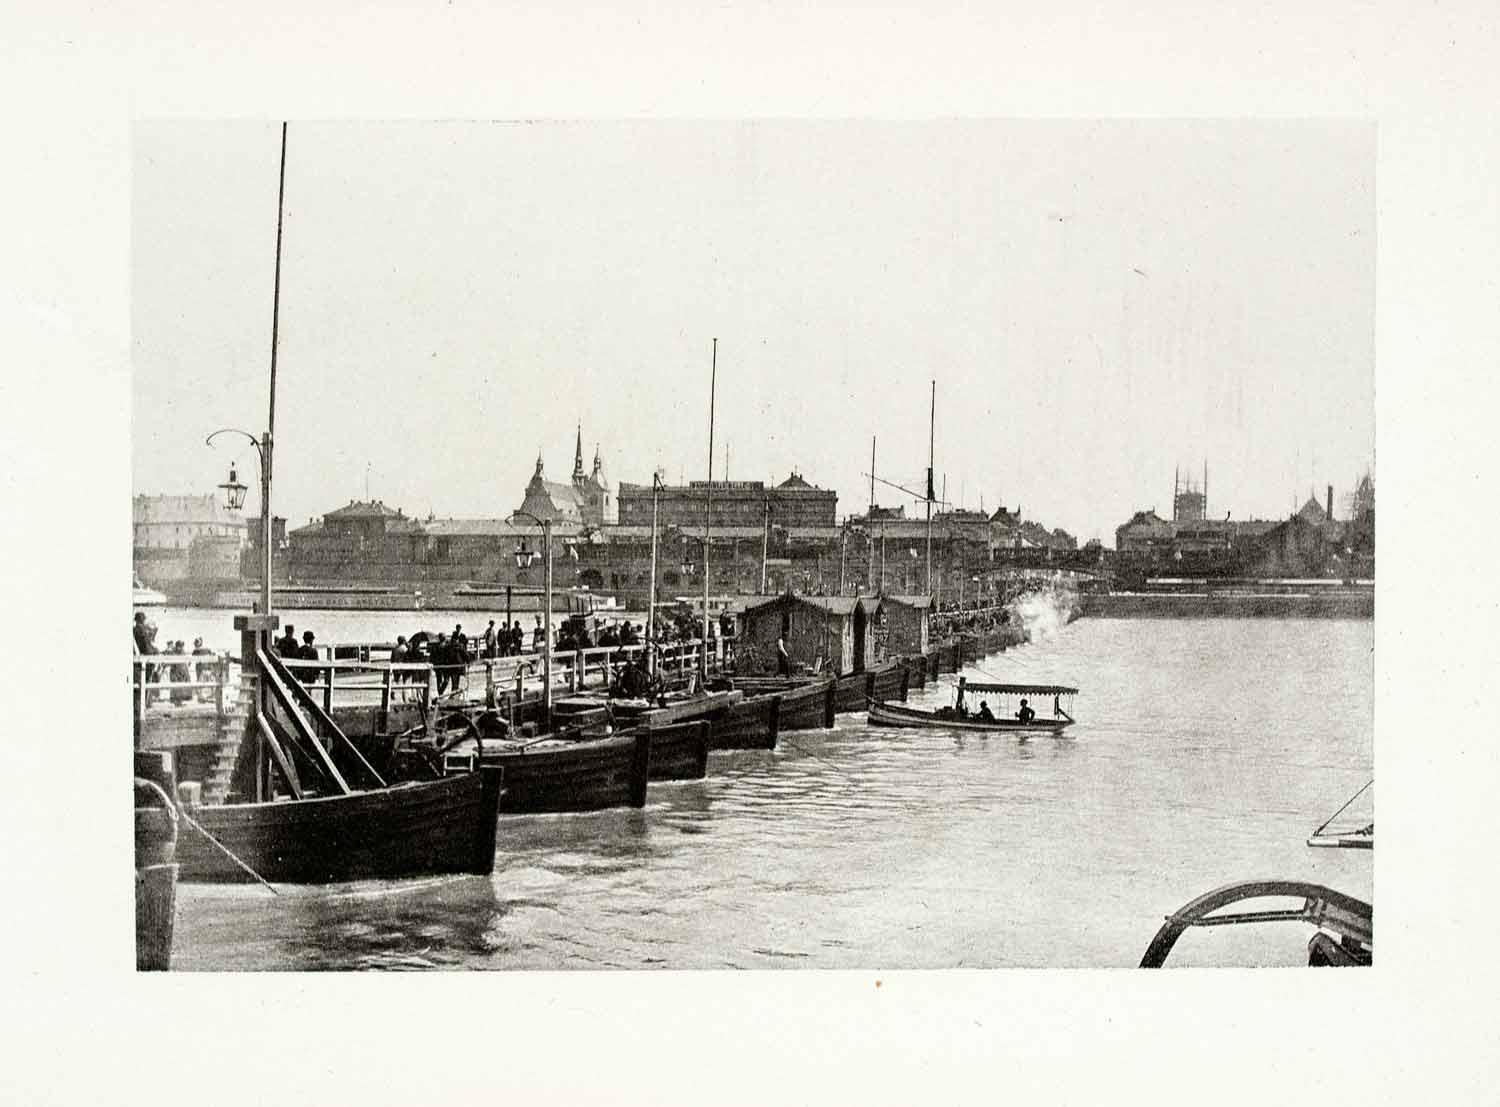 1899 Photogravure Cologne Germany Marine Boat Bridge Cityscape Historical XGYA5